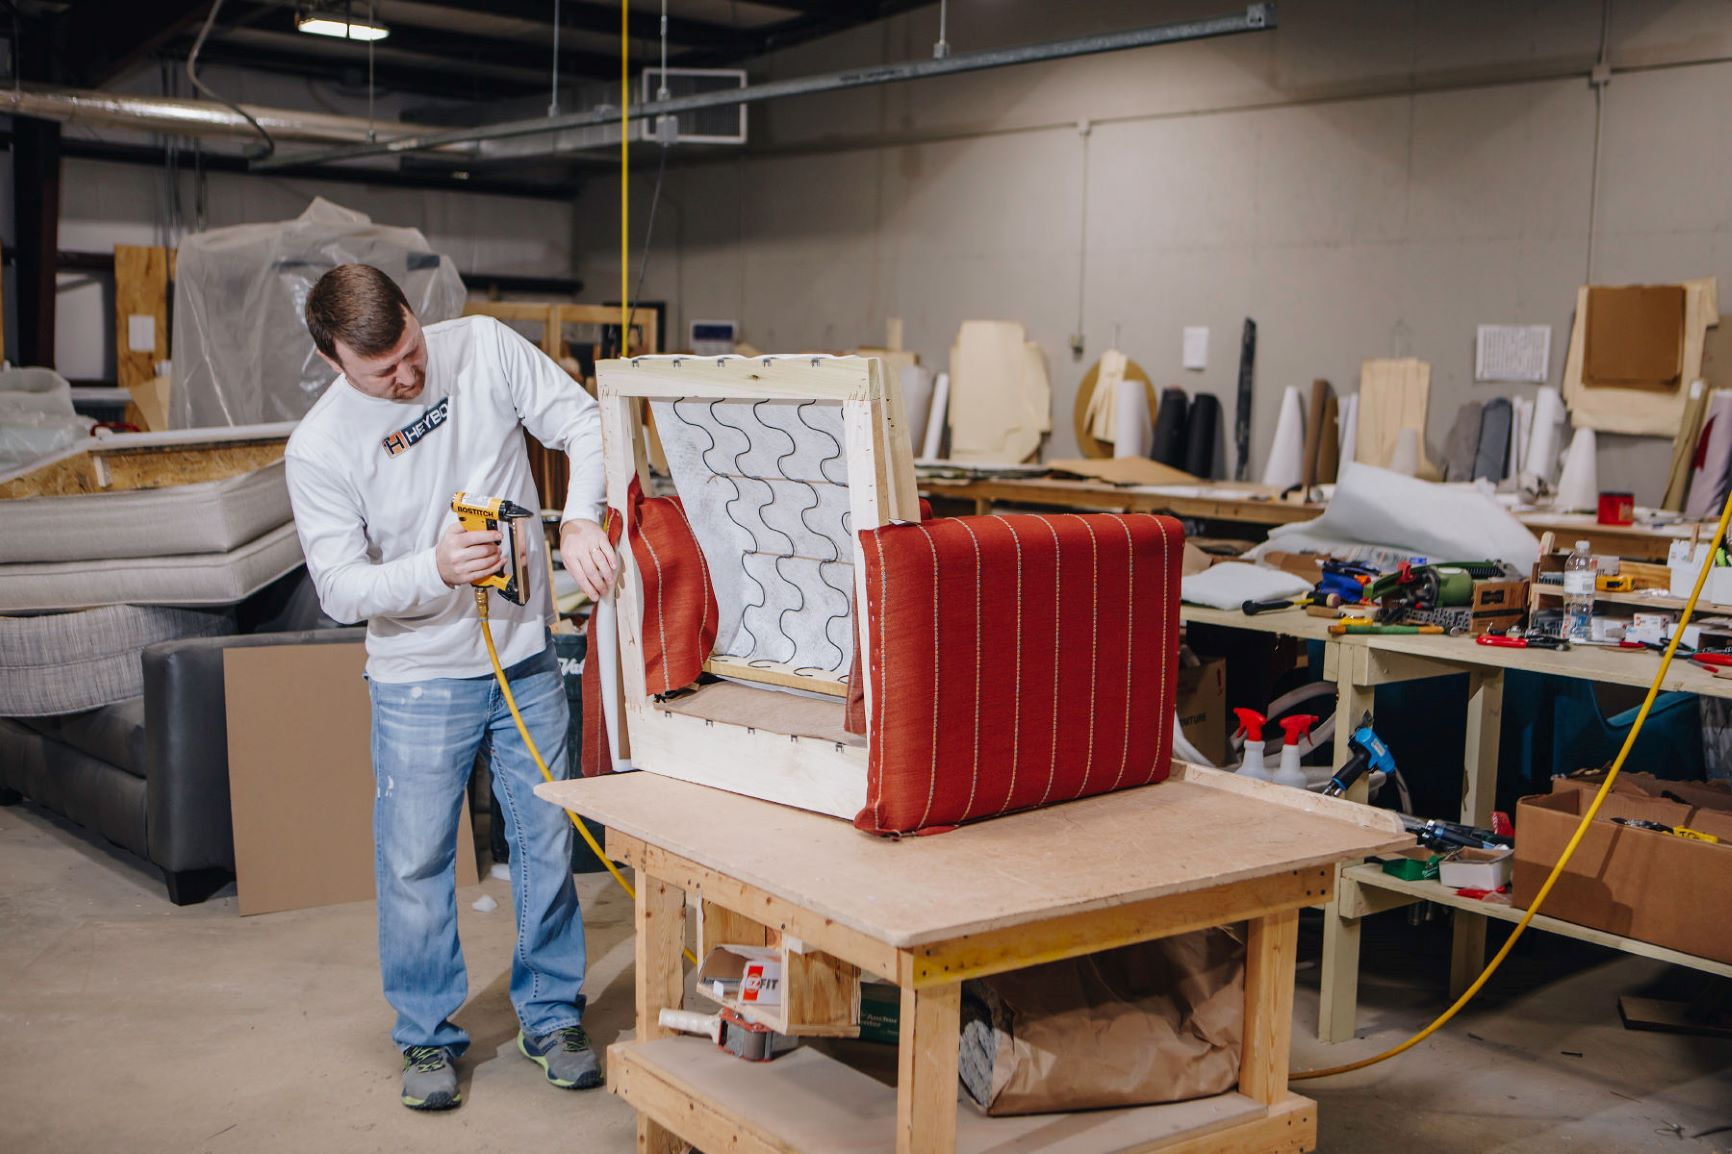 Fusion Furniture employee building a new product